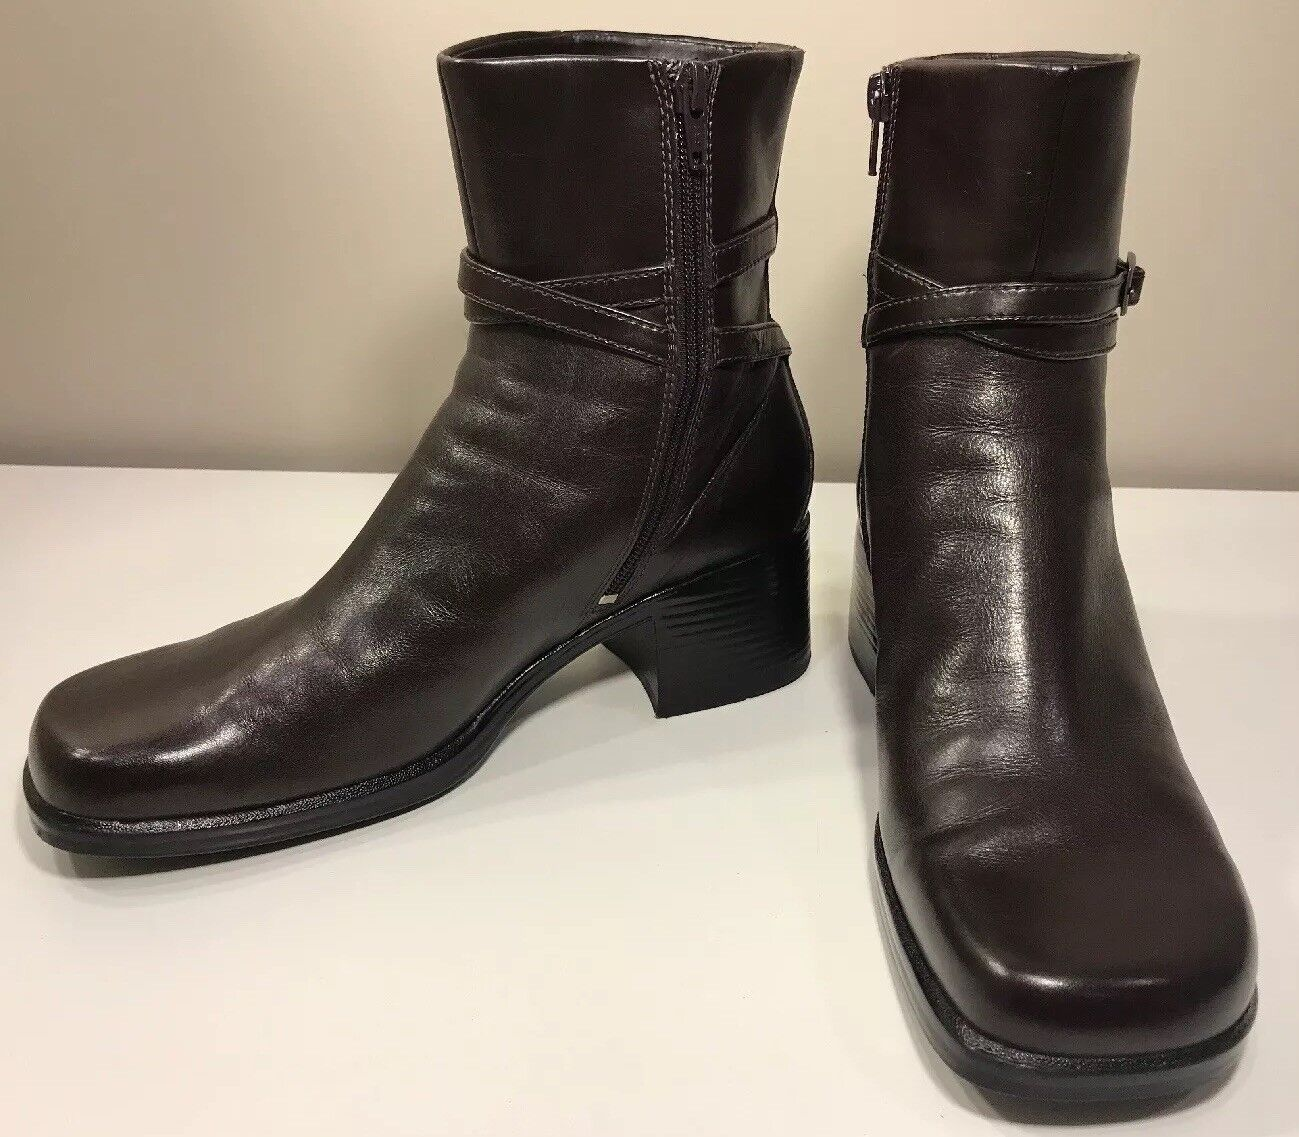 Clarks Ankle Boots Side Zip Leather Brown Women's Size 8M